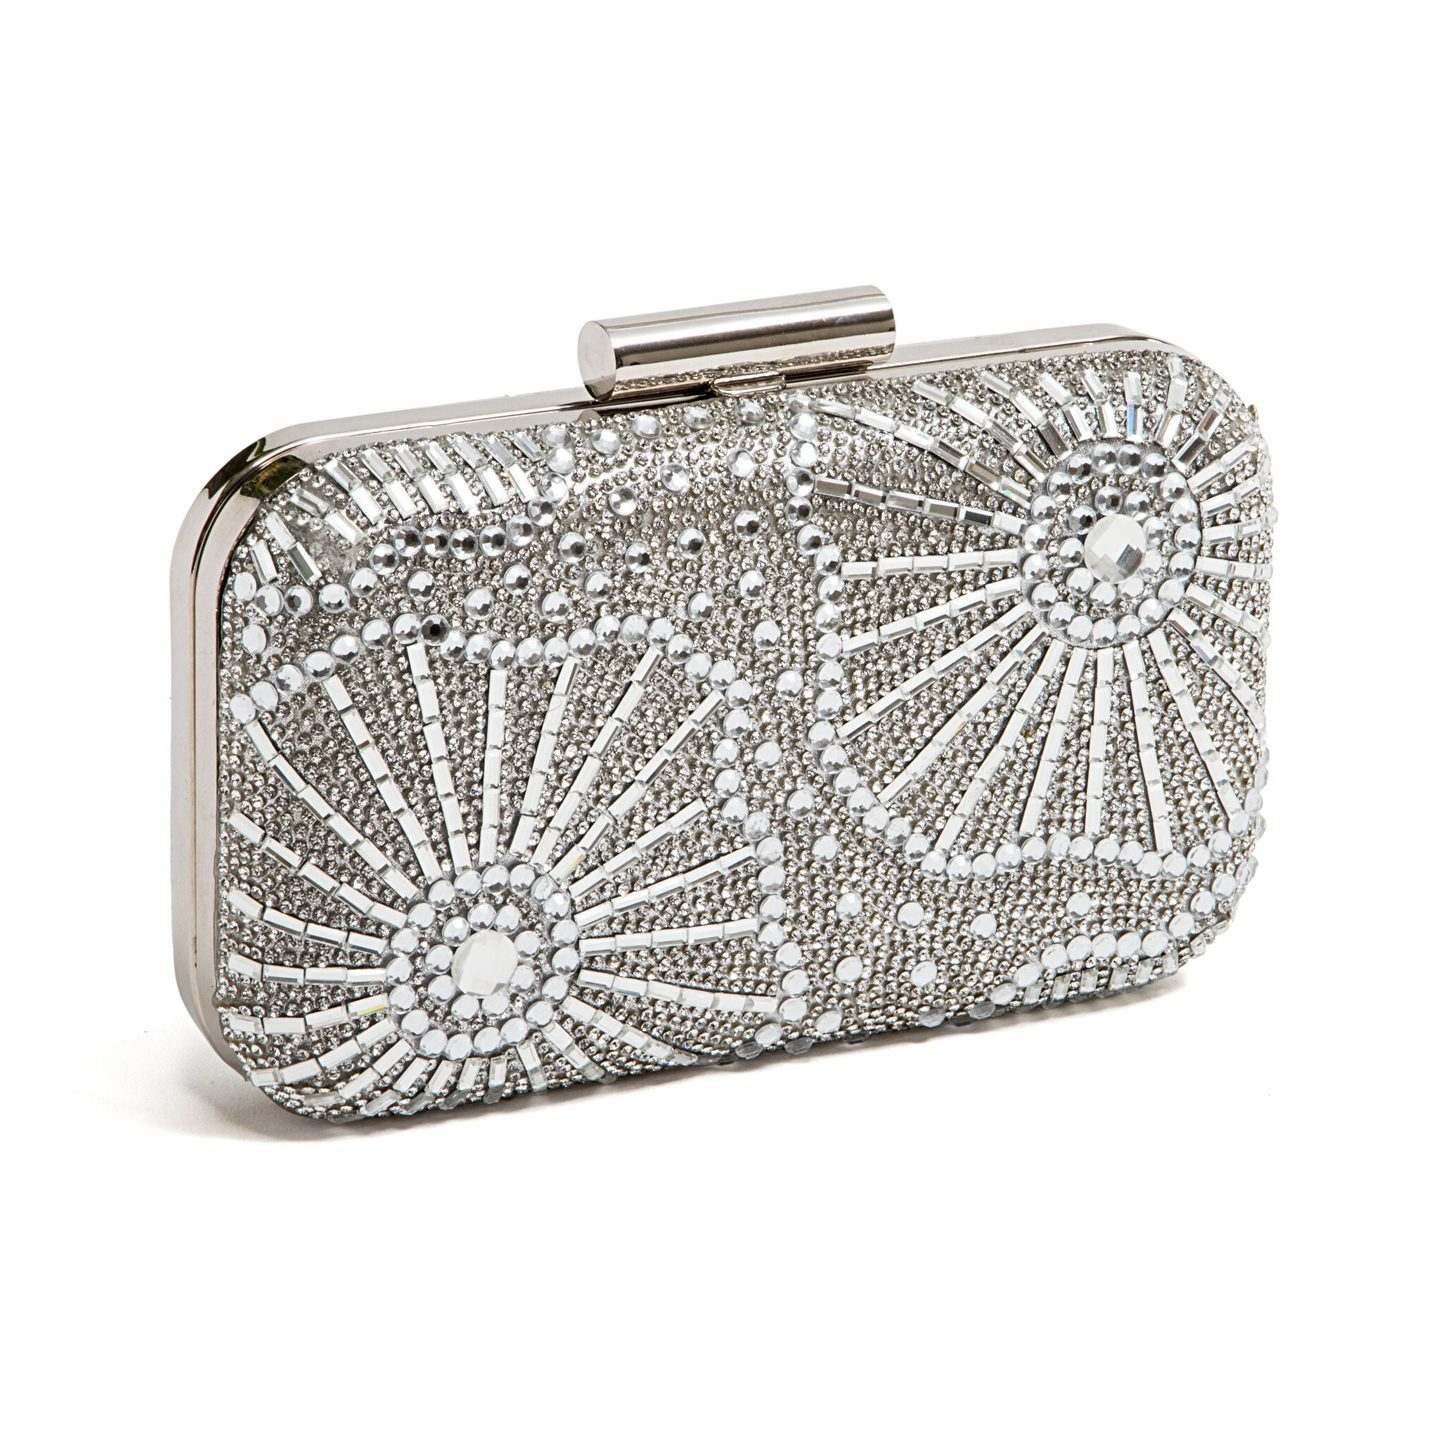 LADY COUTURE CRYSTAL BAG SILVER